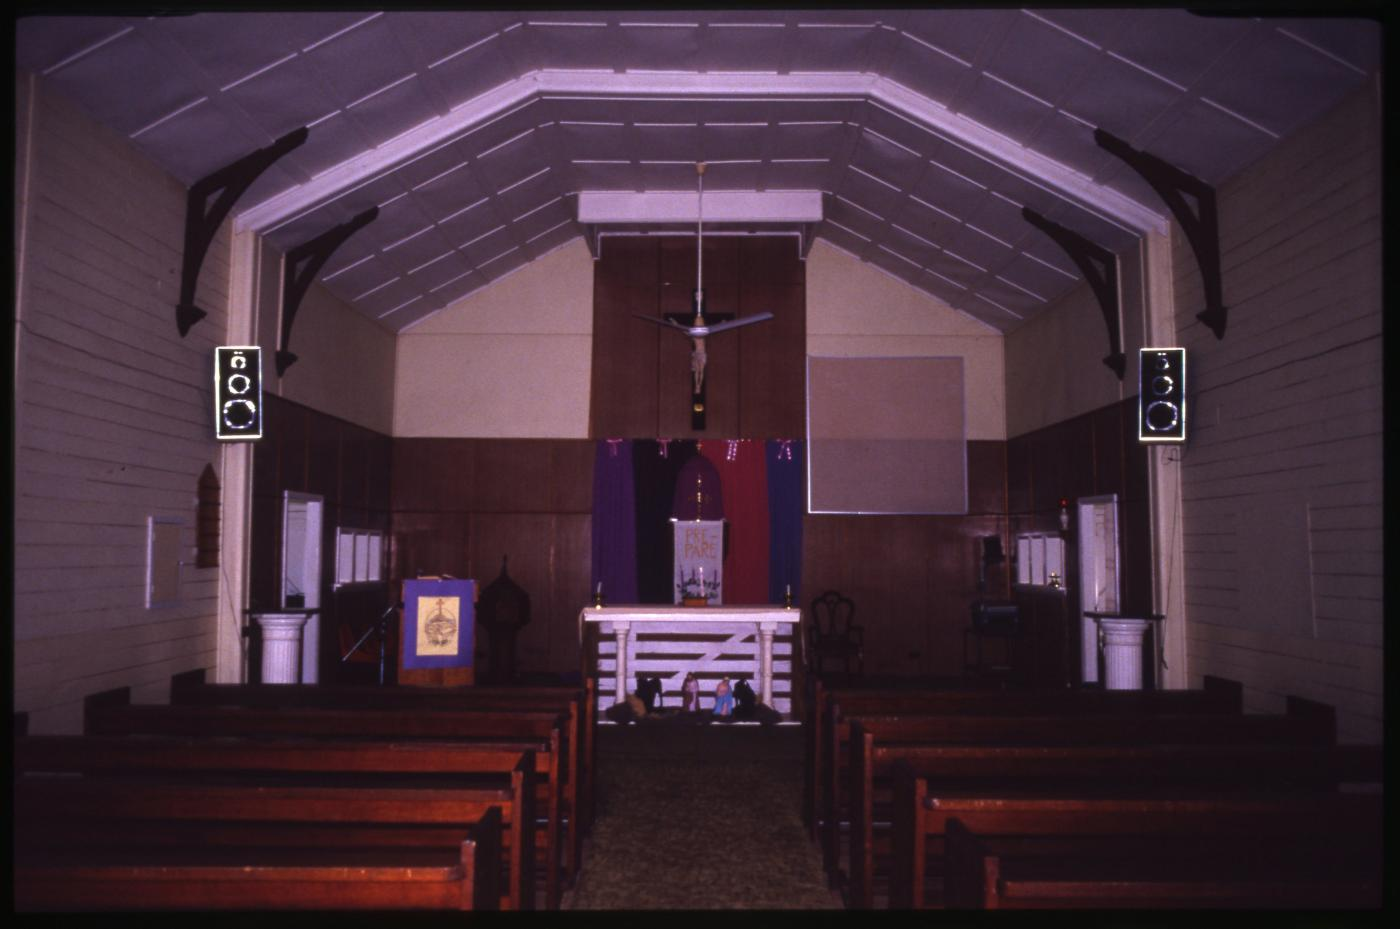 St Colman's Catholic Church - Interior and alter